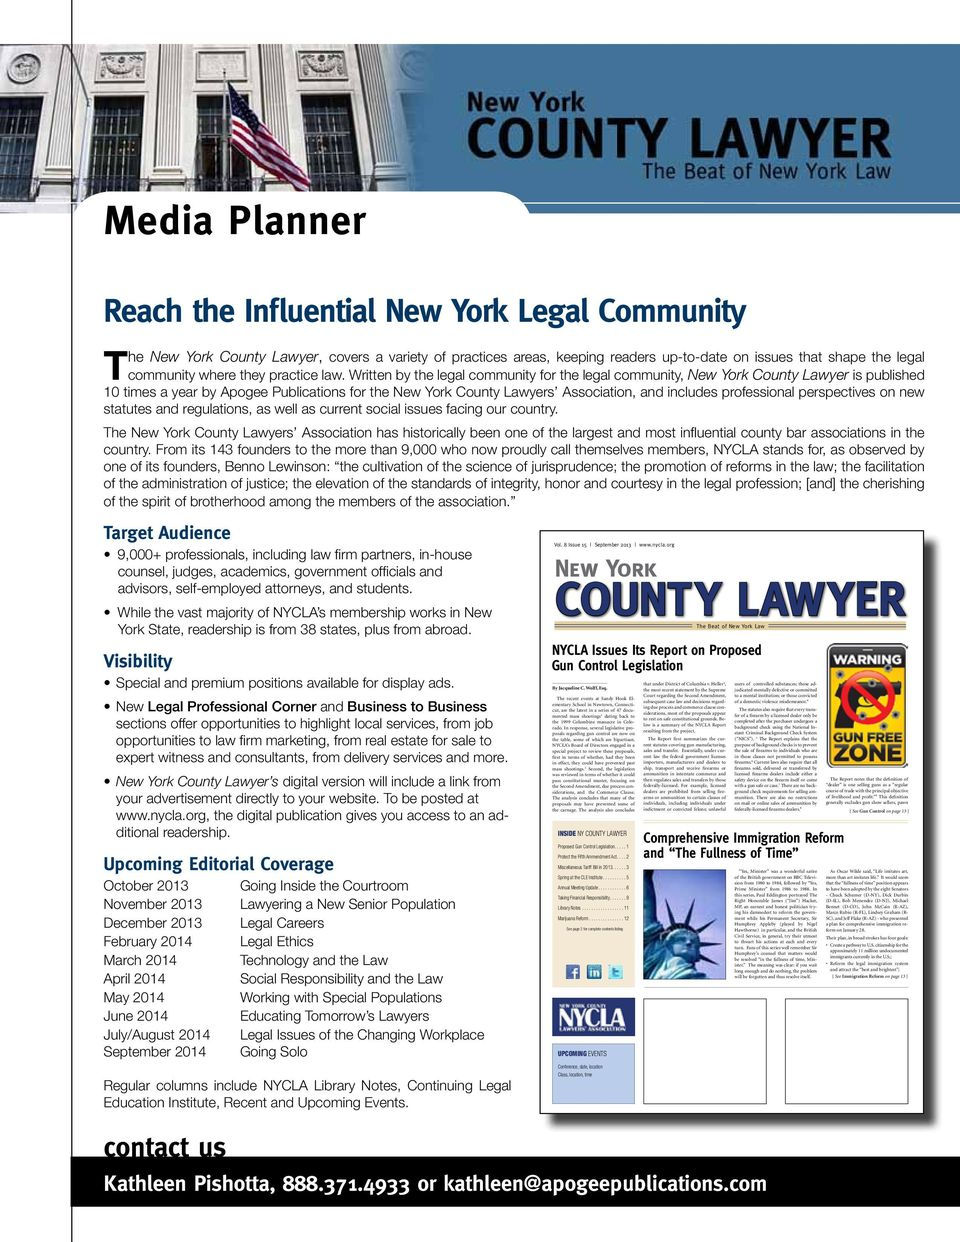 Writte by the legal commuity for the legal commuity, New York Couty Lawyer is published 10 times a year by Apogee Publicatios for the New York Couty Lawyers Associatio, ad icludes professioal